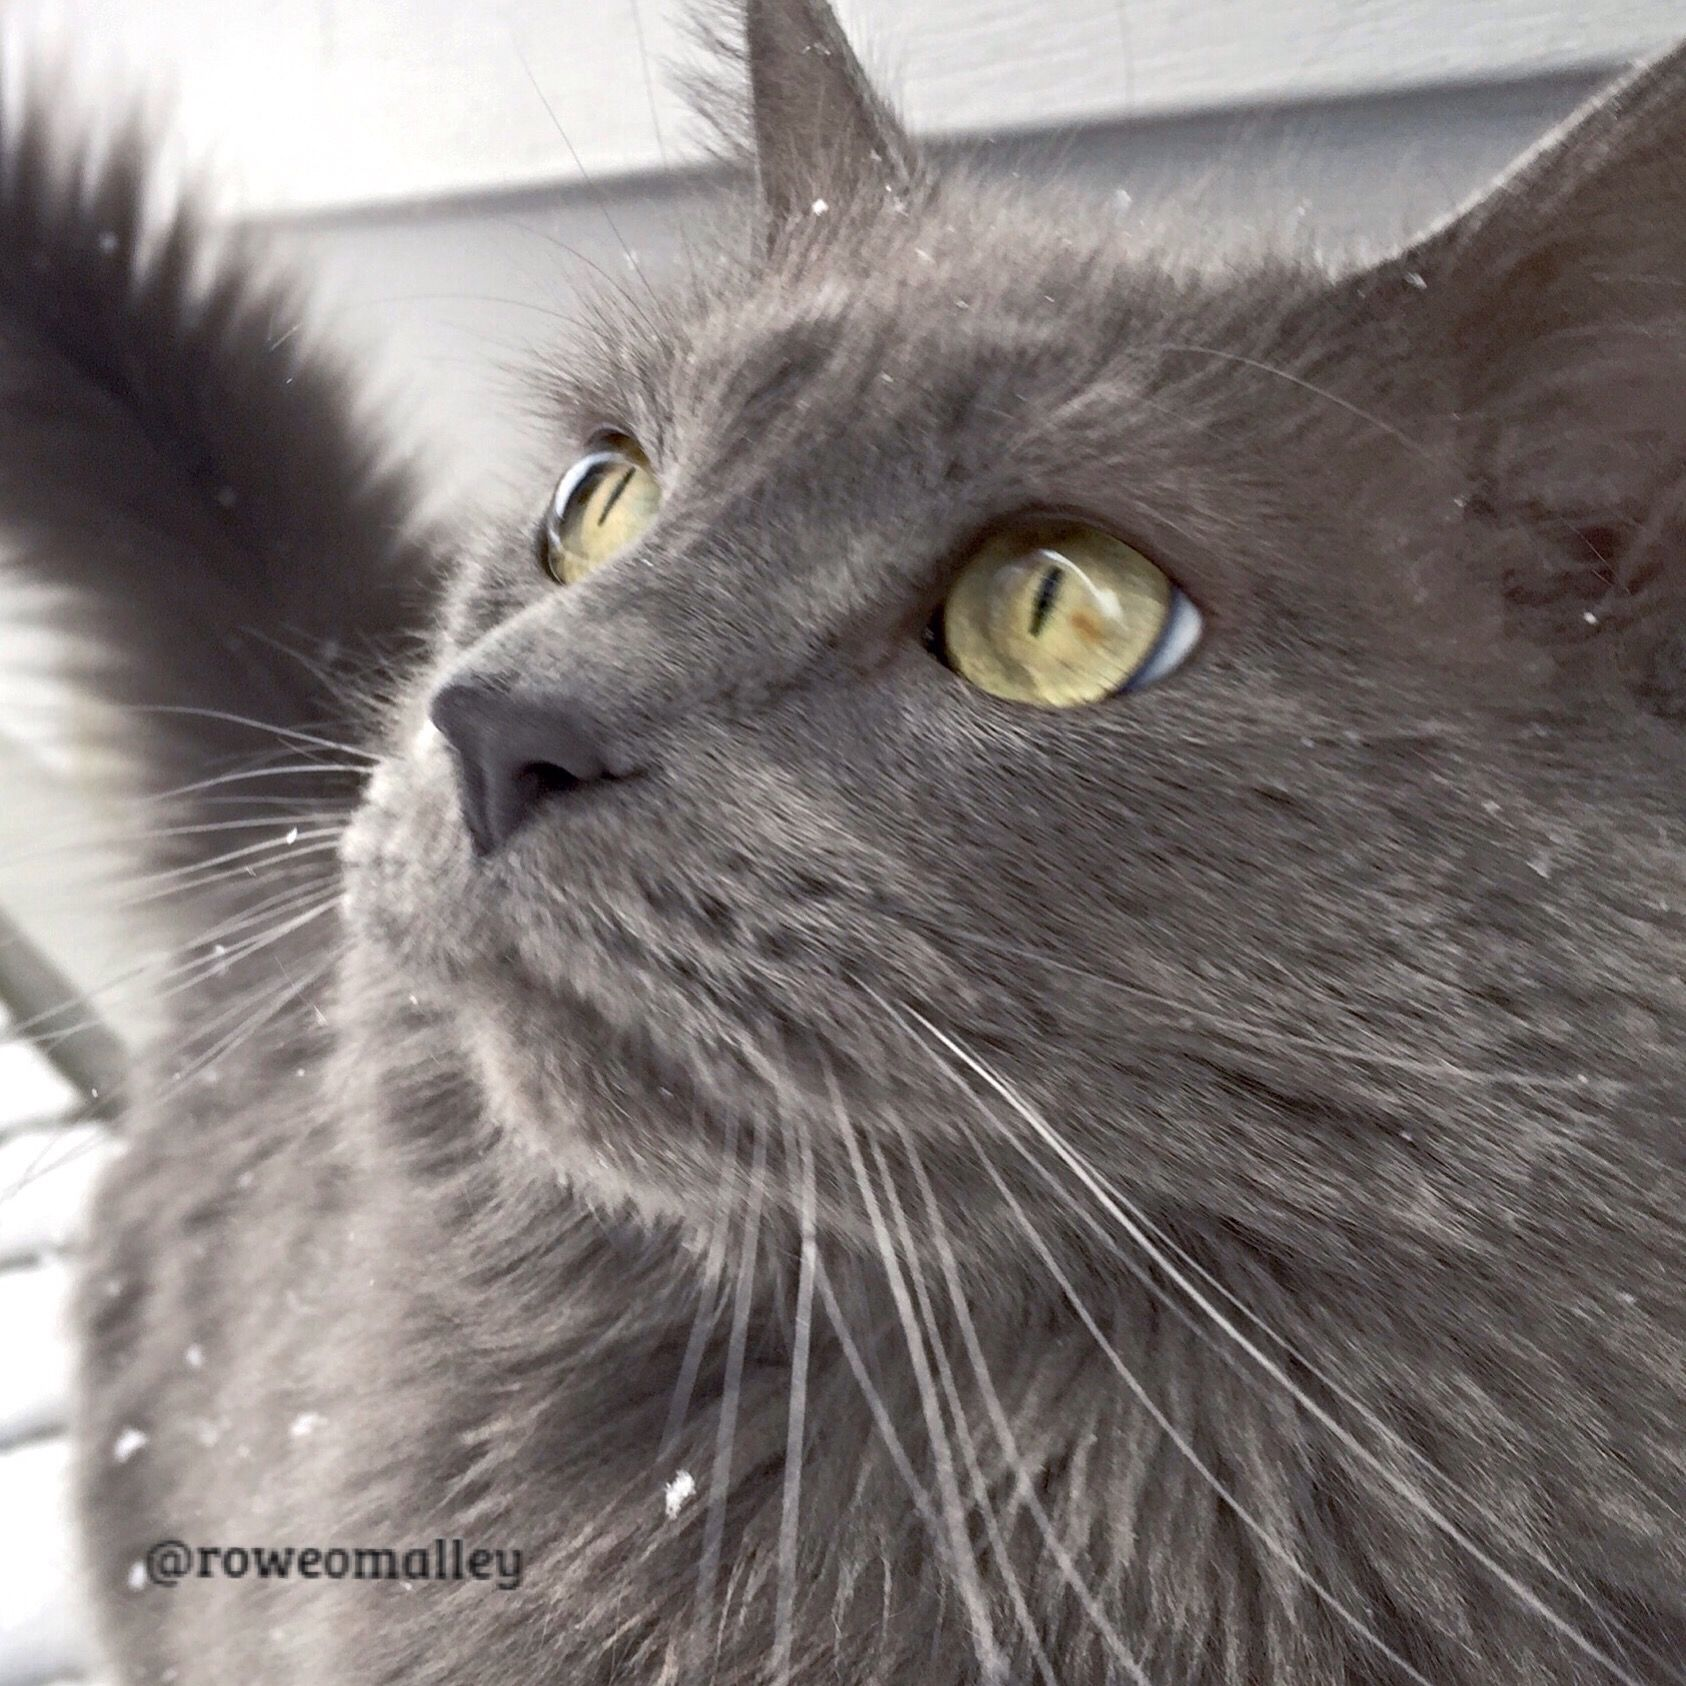 Handsome Waldo nebelung blue cat Rowekitties mainecats rescue cat